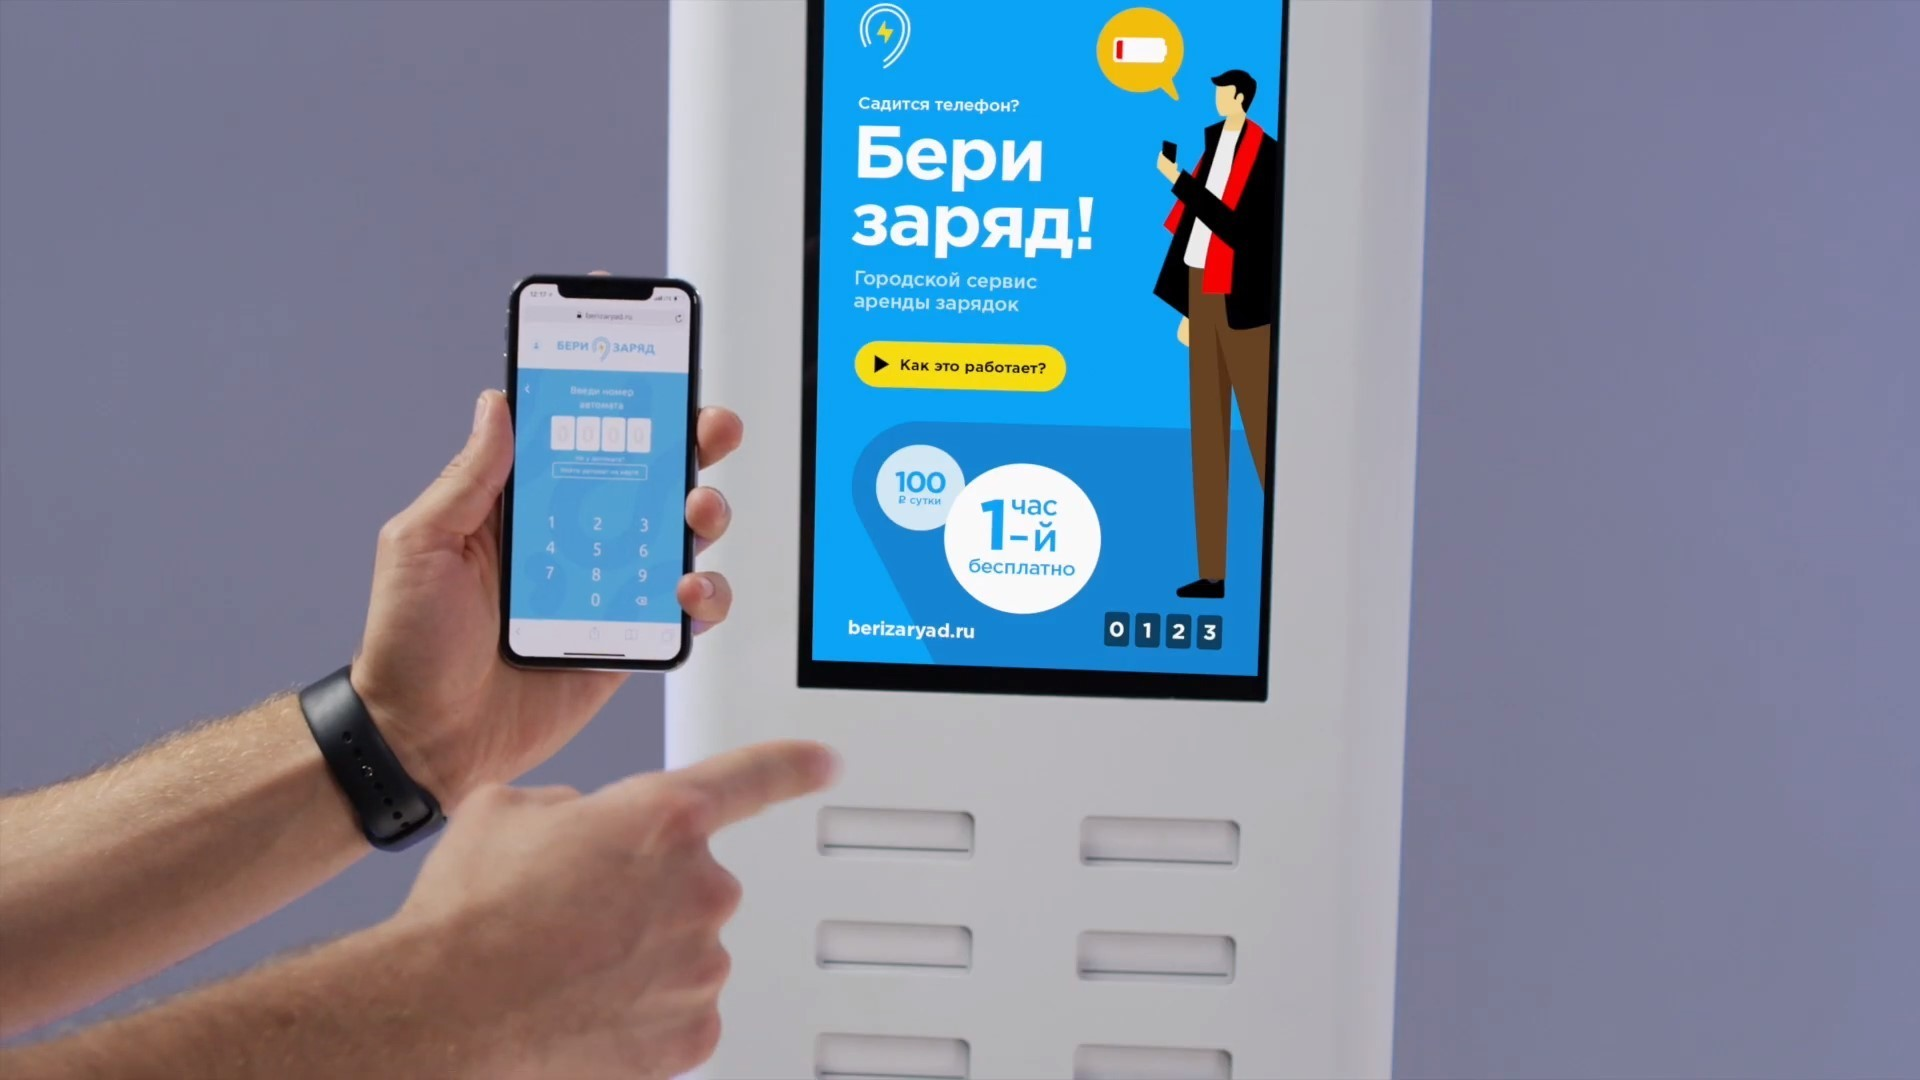 Power Bank Rental Machines Have Appeared in Russian cities